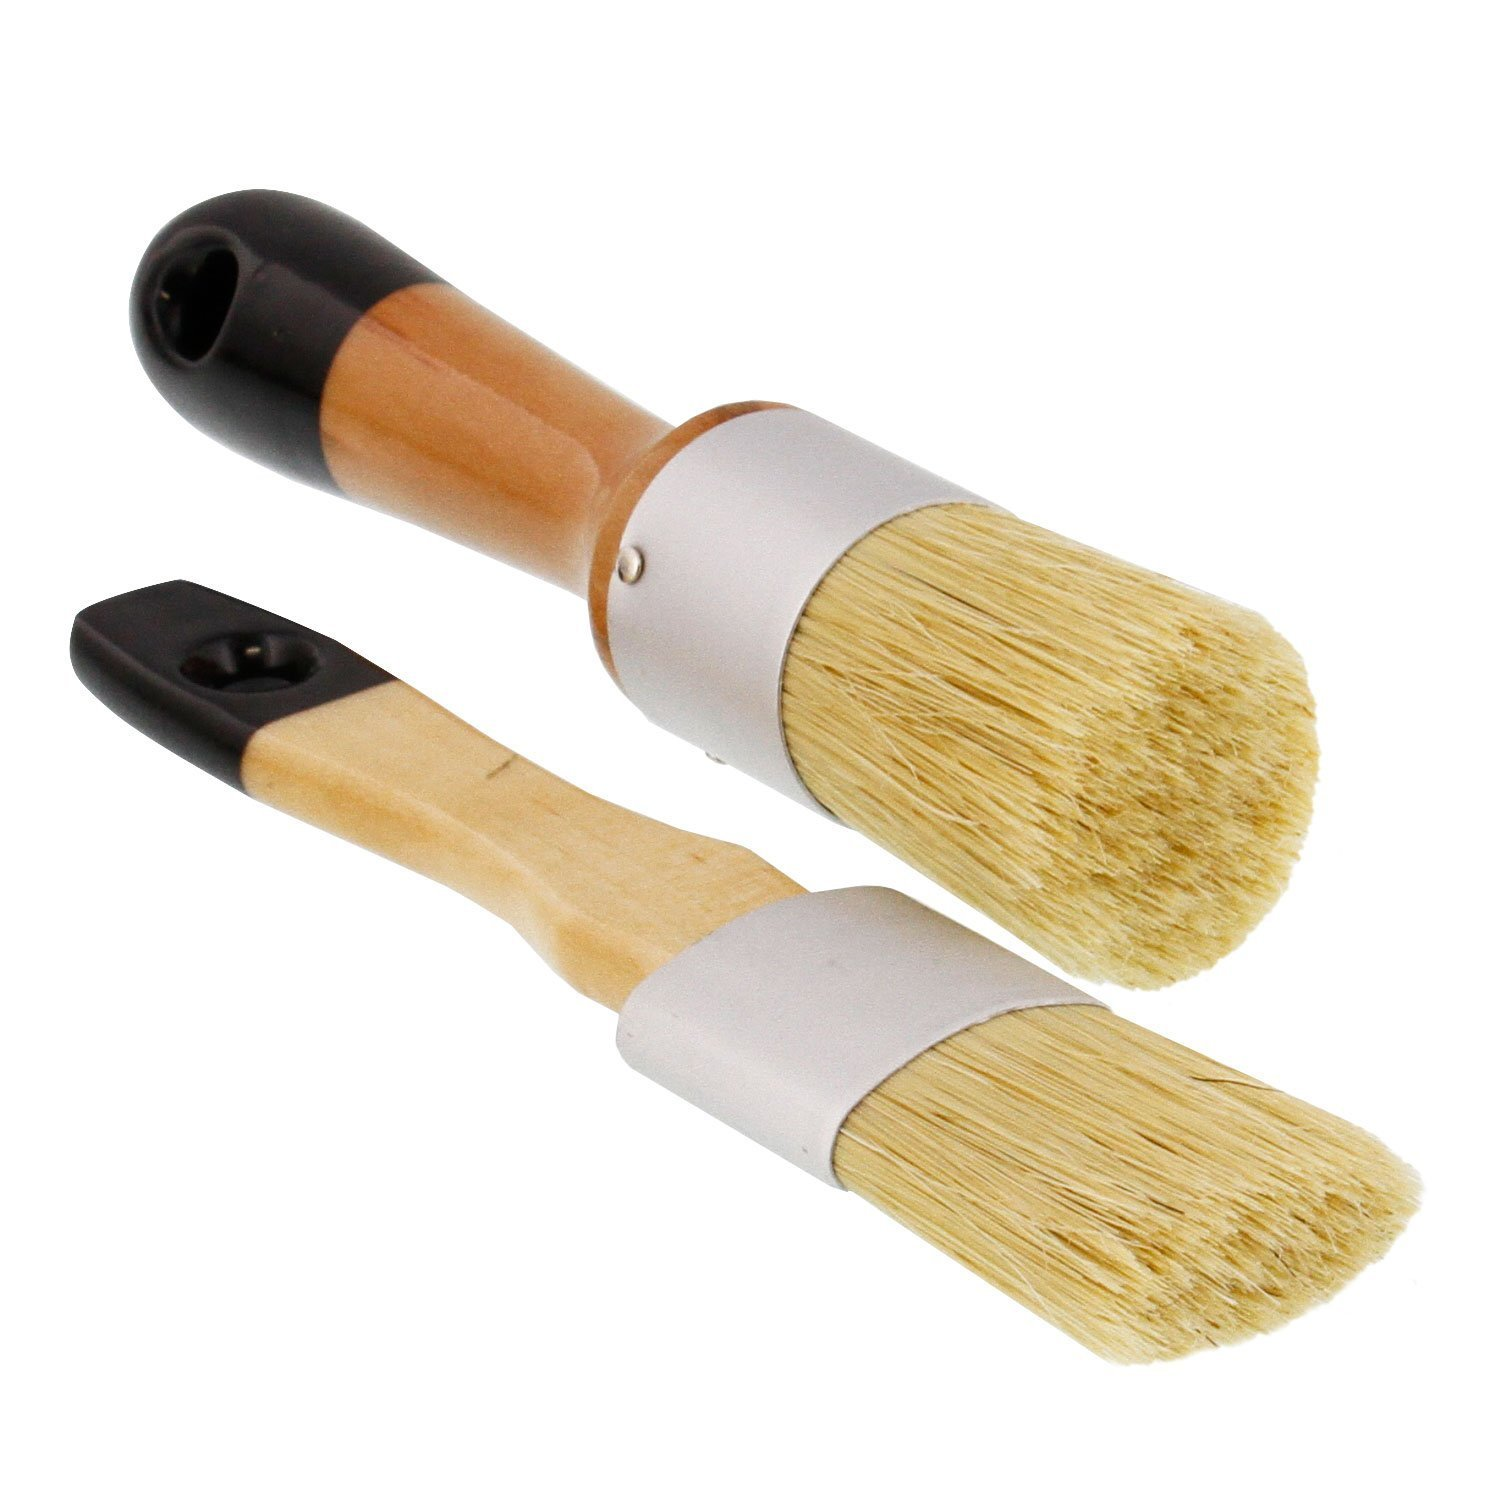 US Art Supply 2-Piece Multi Use Oval and Round Chalk, Wax and Stencil Brushes for Chairs, Dressers, Cabinets and other Wood Furniture - 100% Natural Bristles, Lightweight and Rust Resistant BS-W02